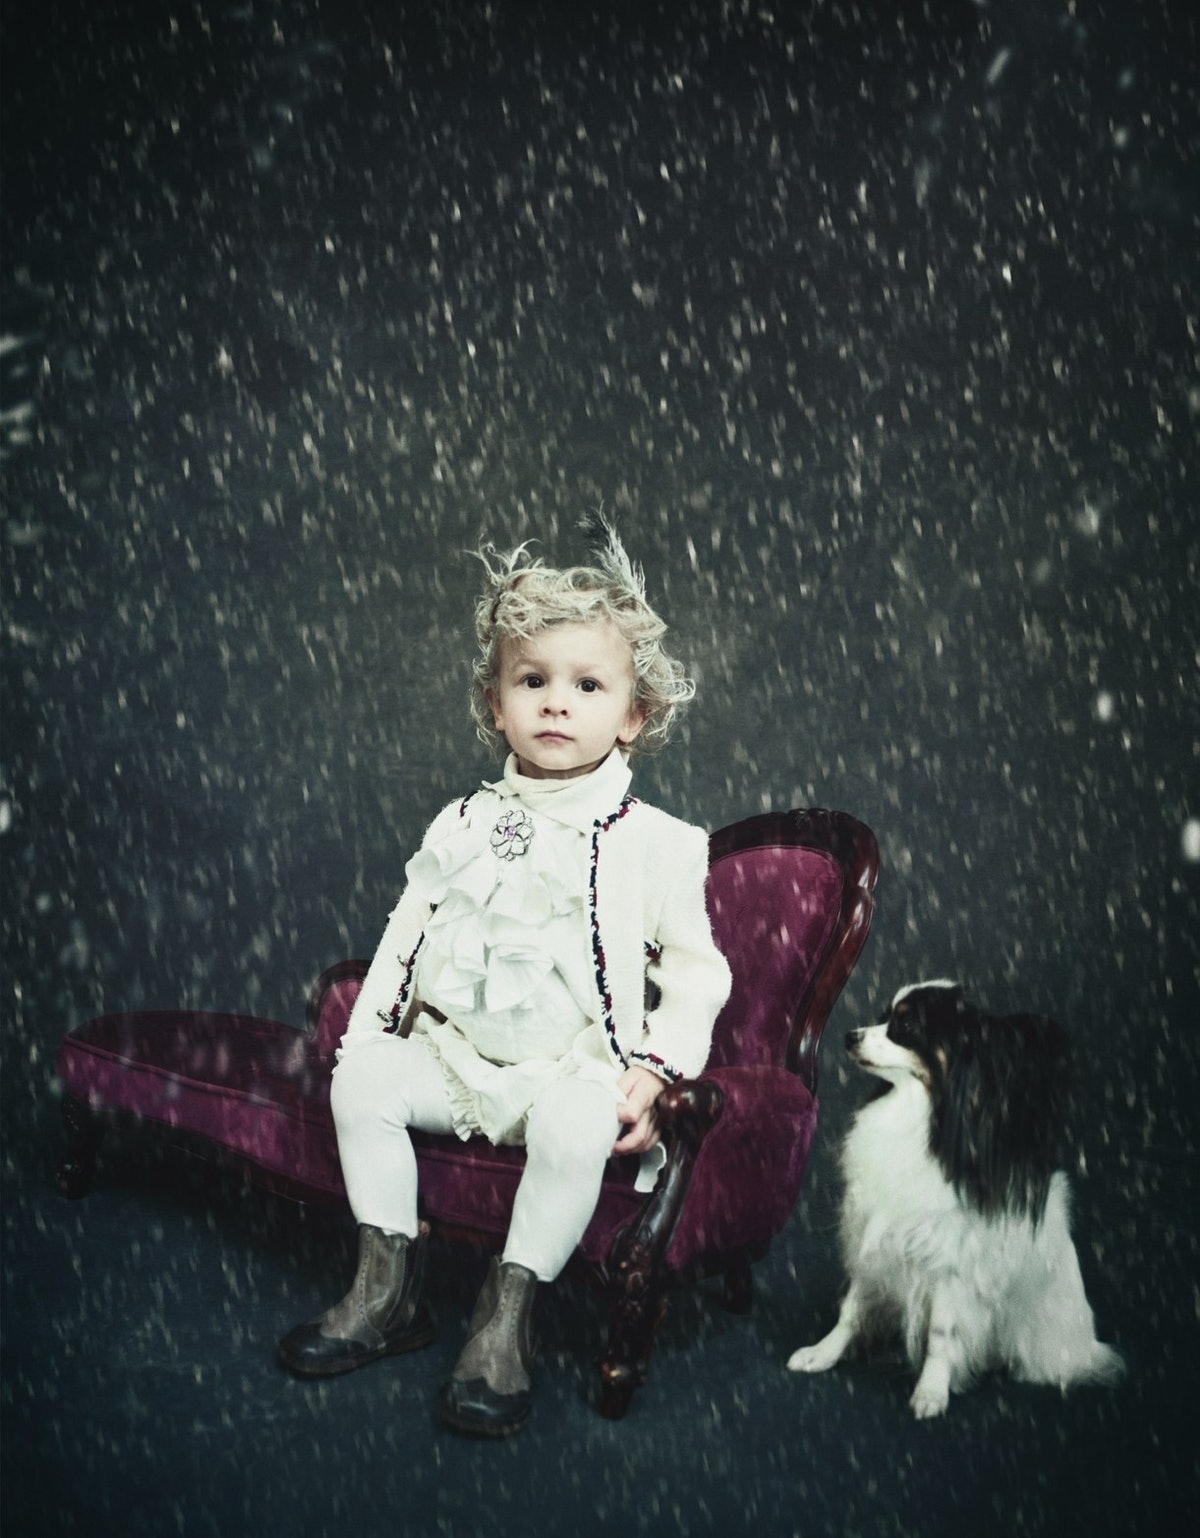 Family Circus. Photo by Paolo Roversi, styled by Camilla Nickerson. W Magazine, December 2010.jpg